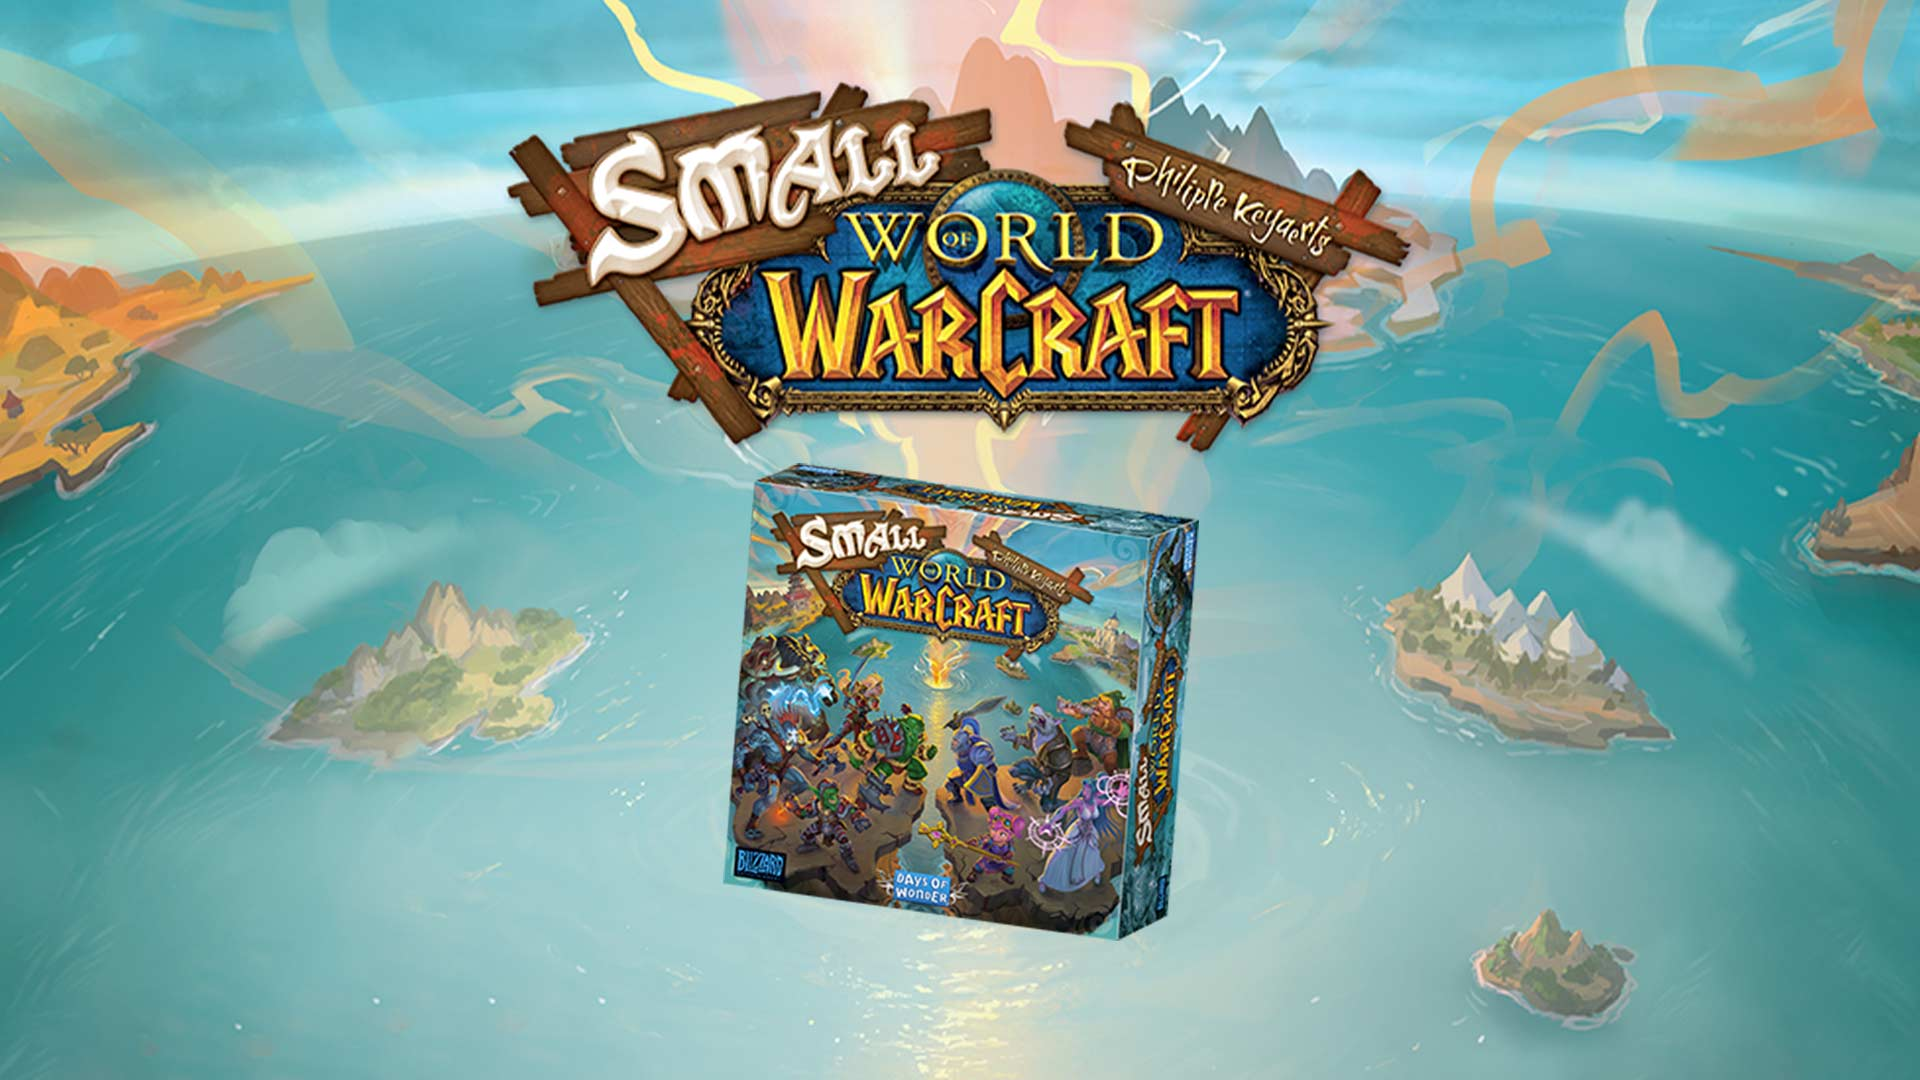 Small World of Warcraft Review